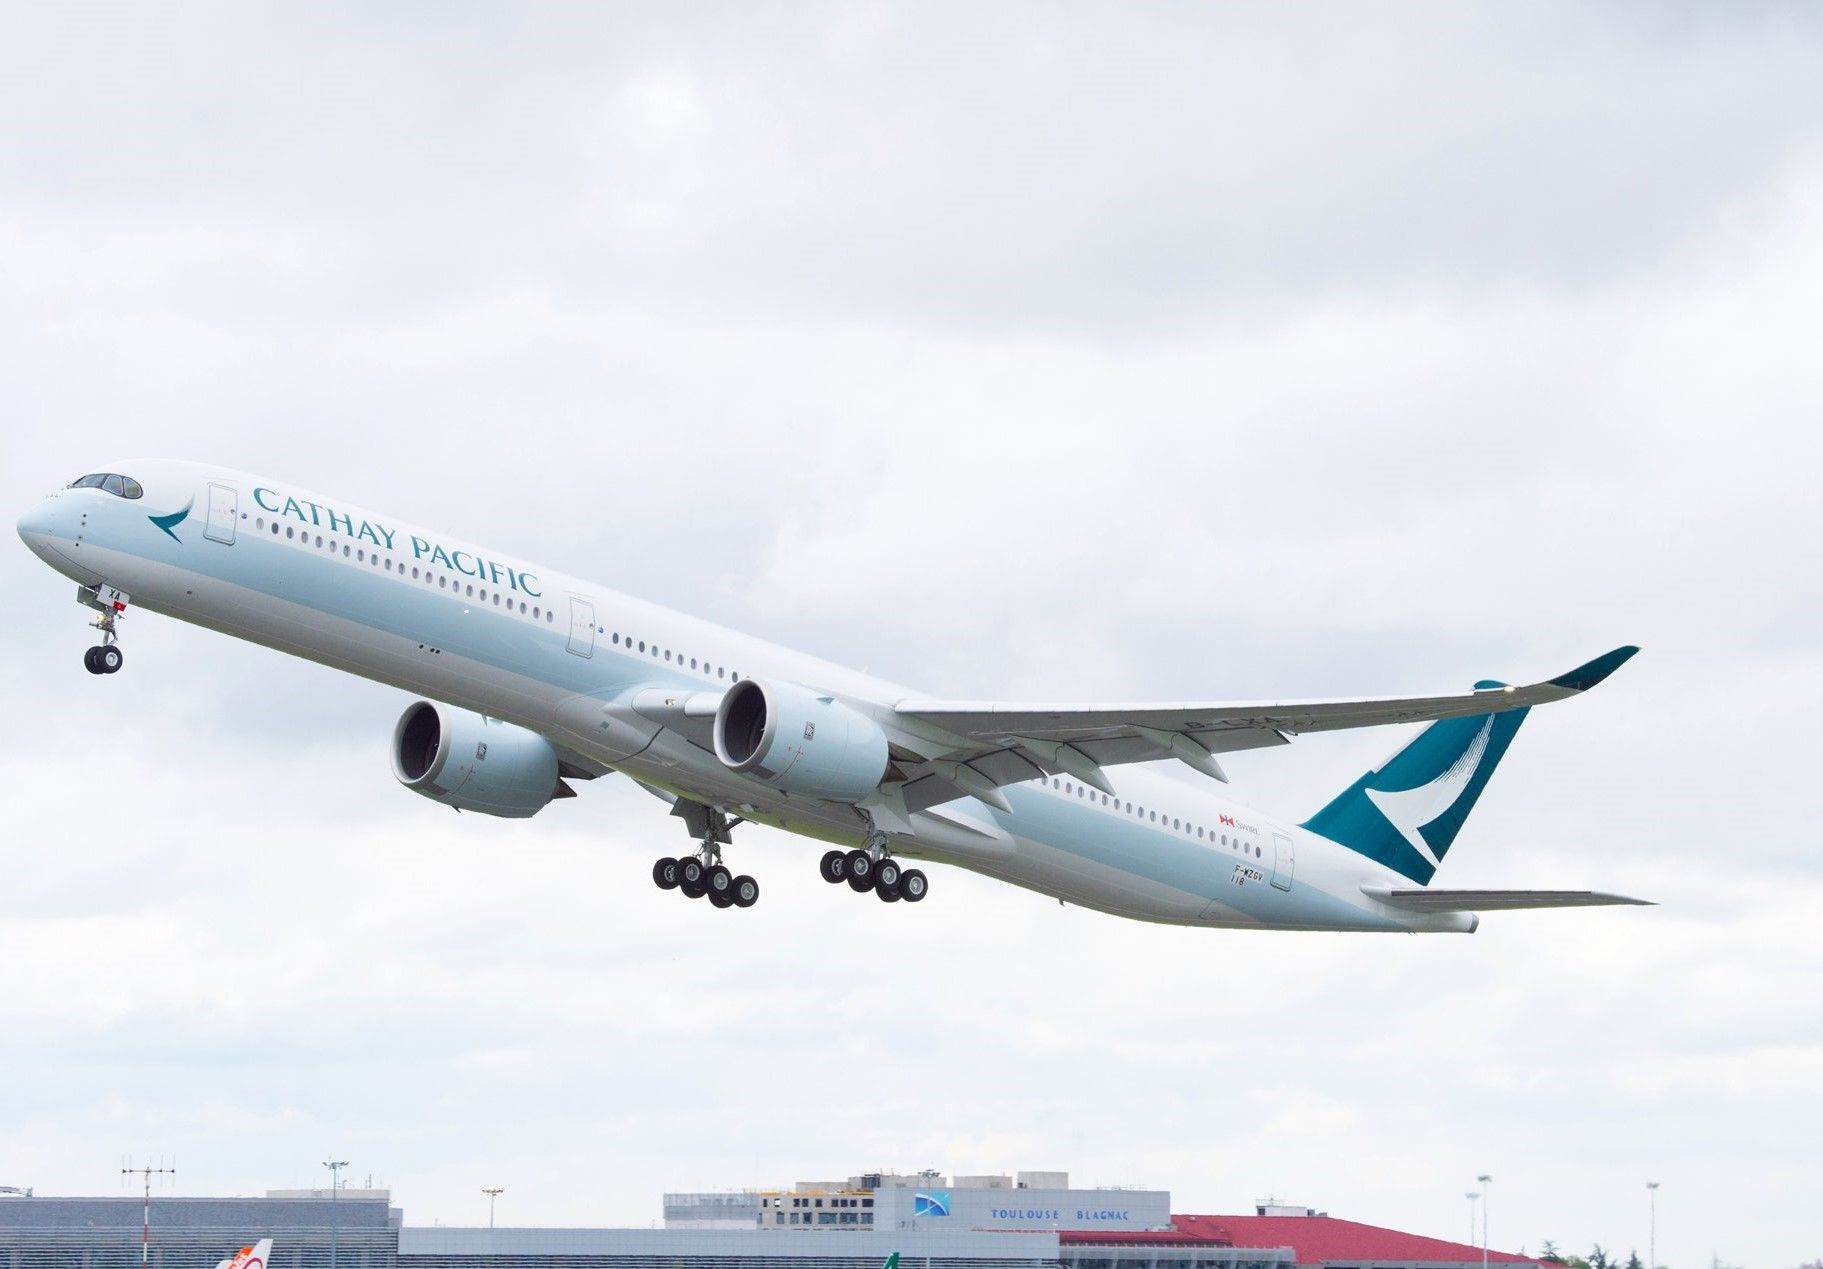 Pin by blueskies on planes Cathay pacific, Airbus, Fleet